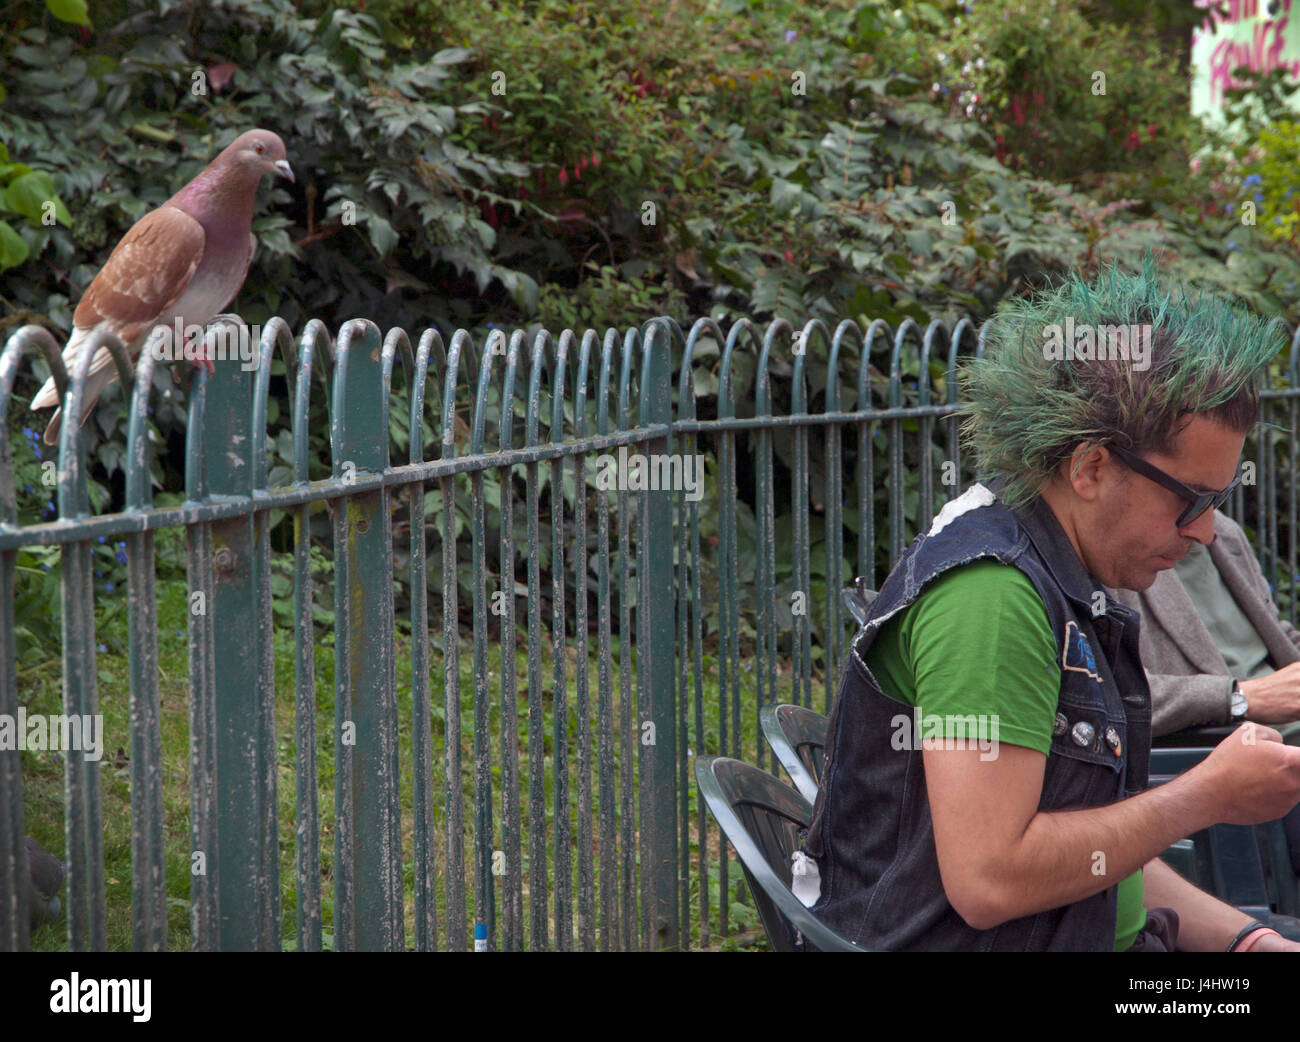 A pigeon watches over a man with green hair in Pavilion Gardens, Brighton - Stock Image